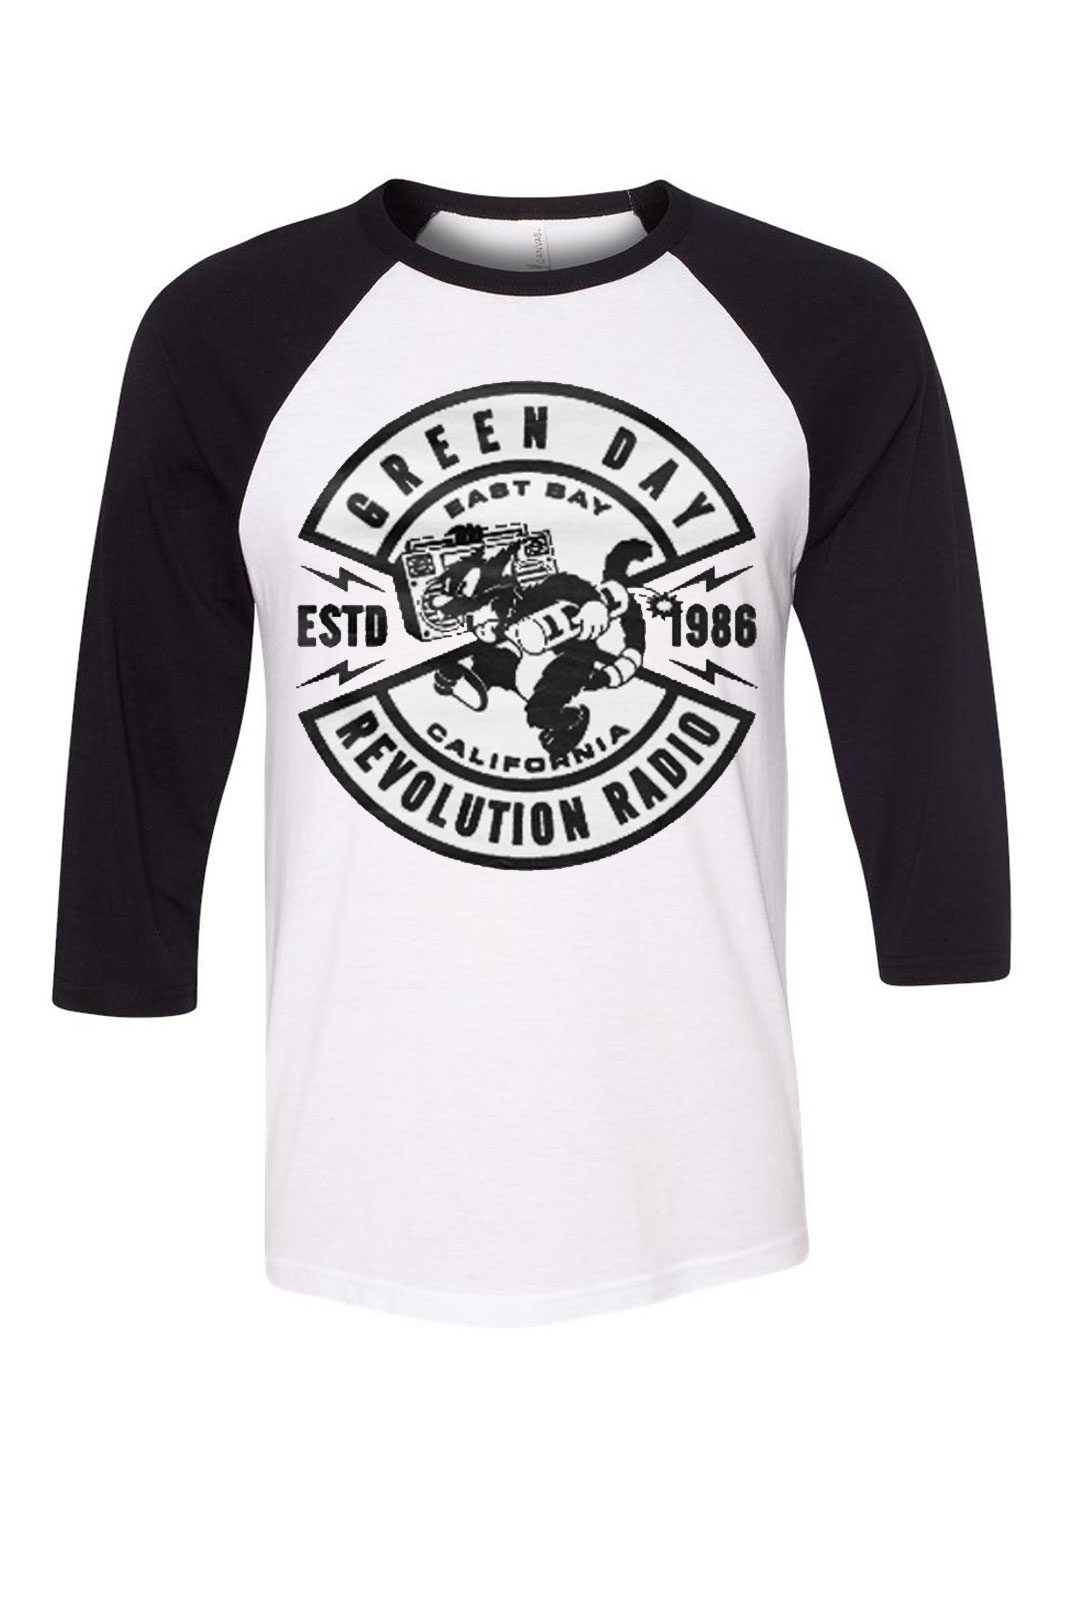 Baseball Tee Green Day Revolution Radio